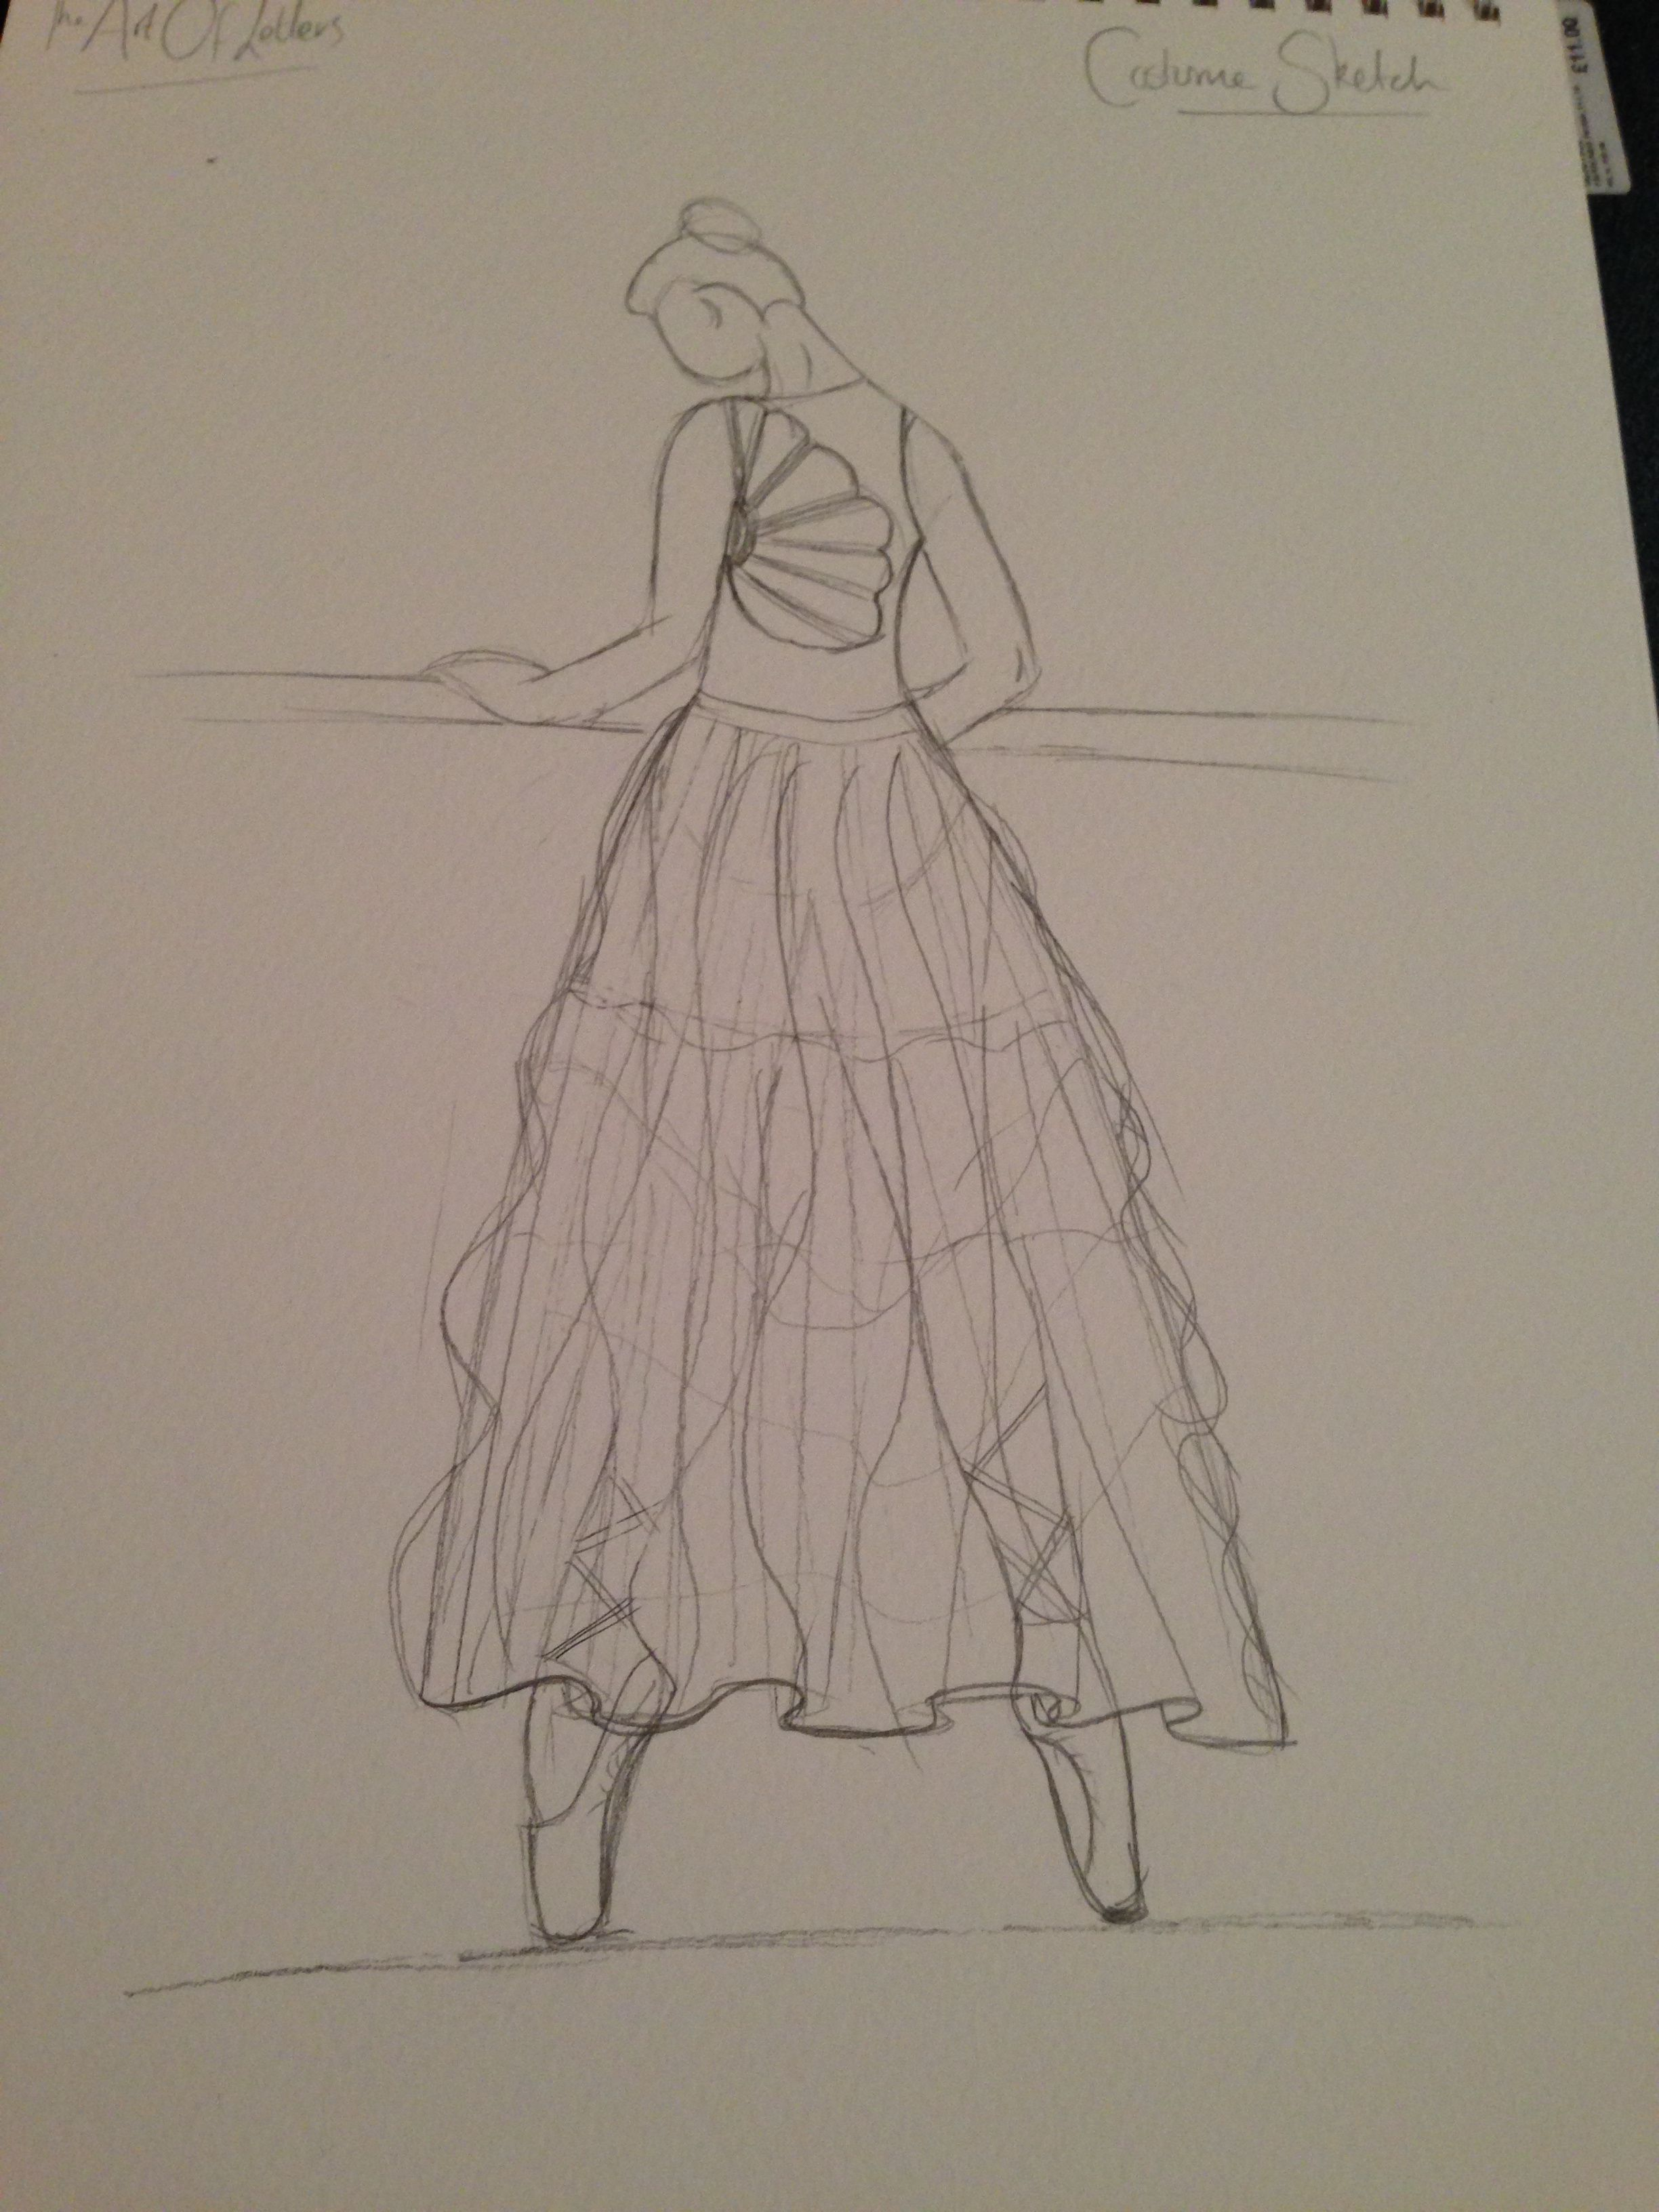 Costume Design idea. Leotard top and Ruffled tulle asymmetrical skirt